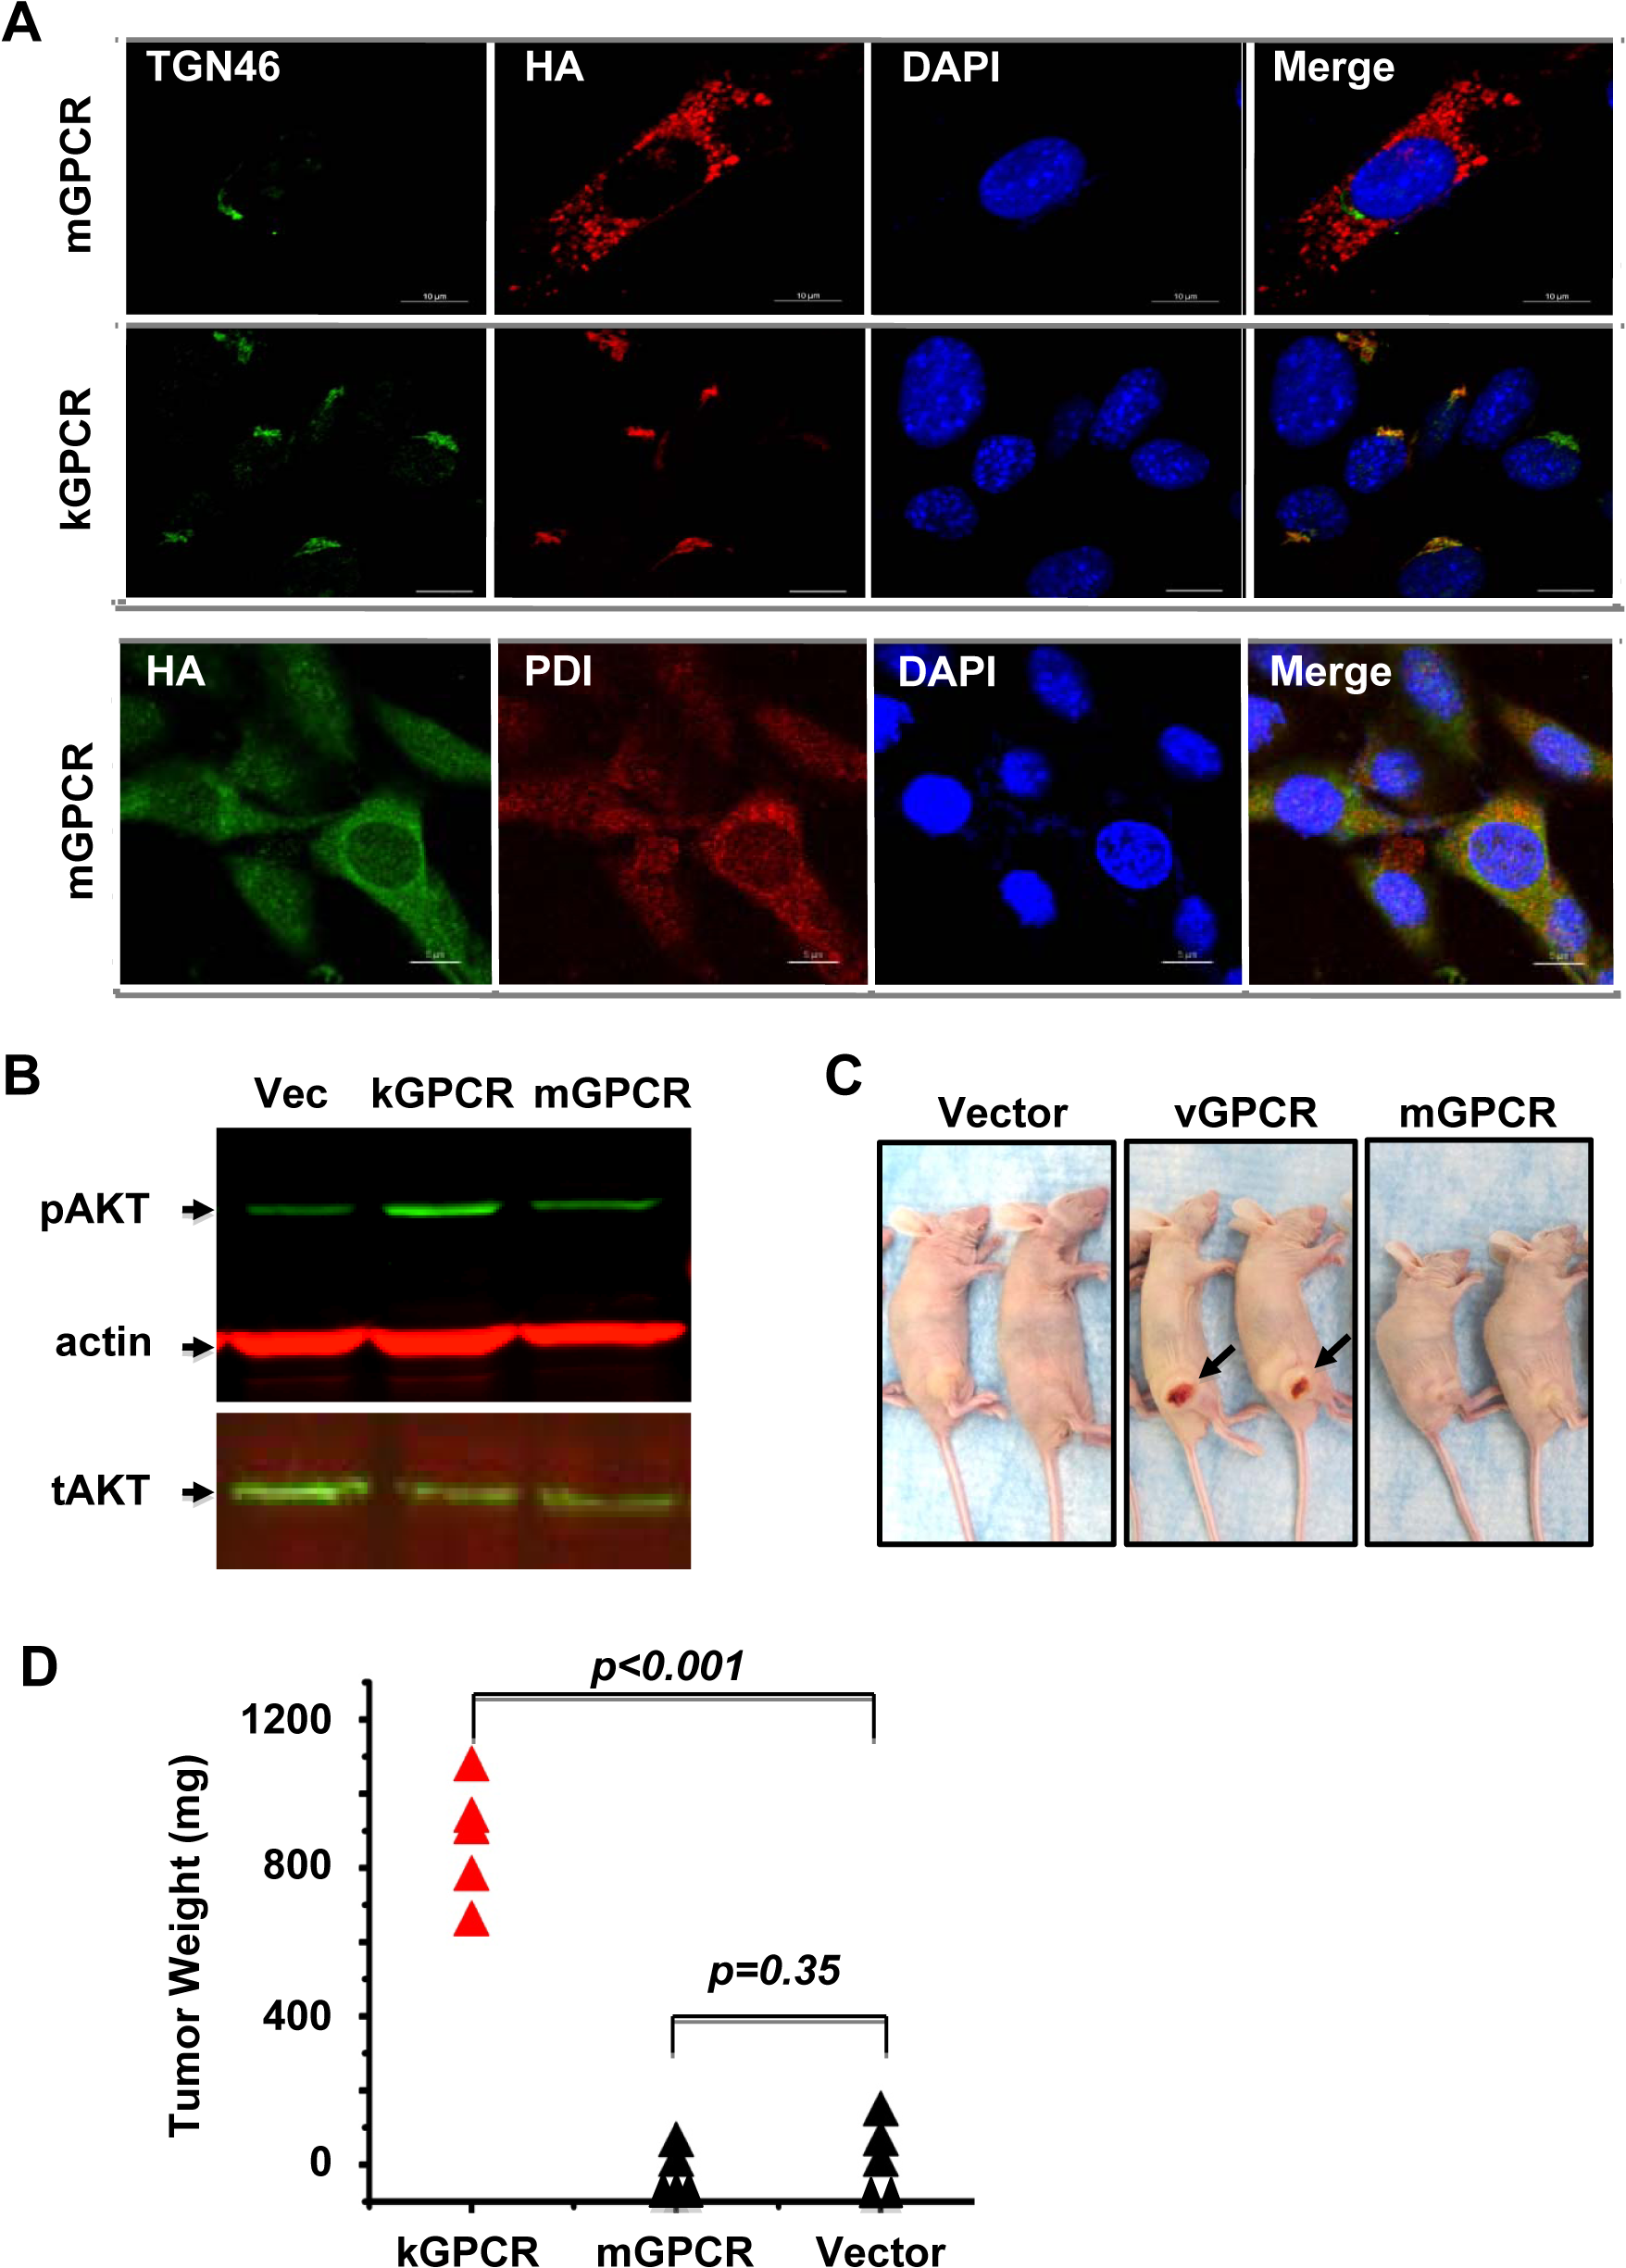 Differential signaling and tumorigenic capacity of kGPCR and mGPCR.